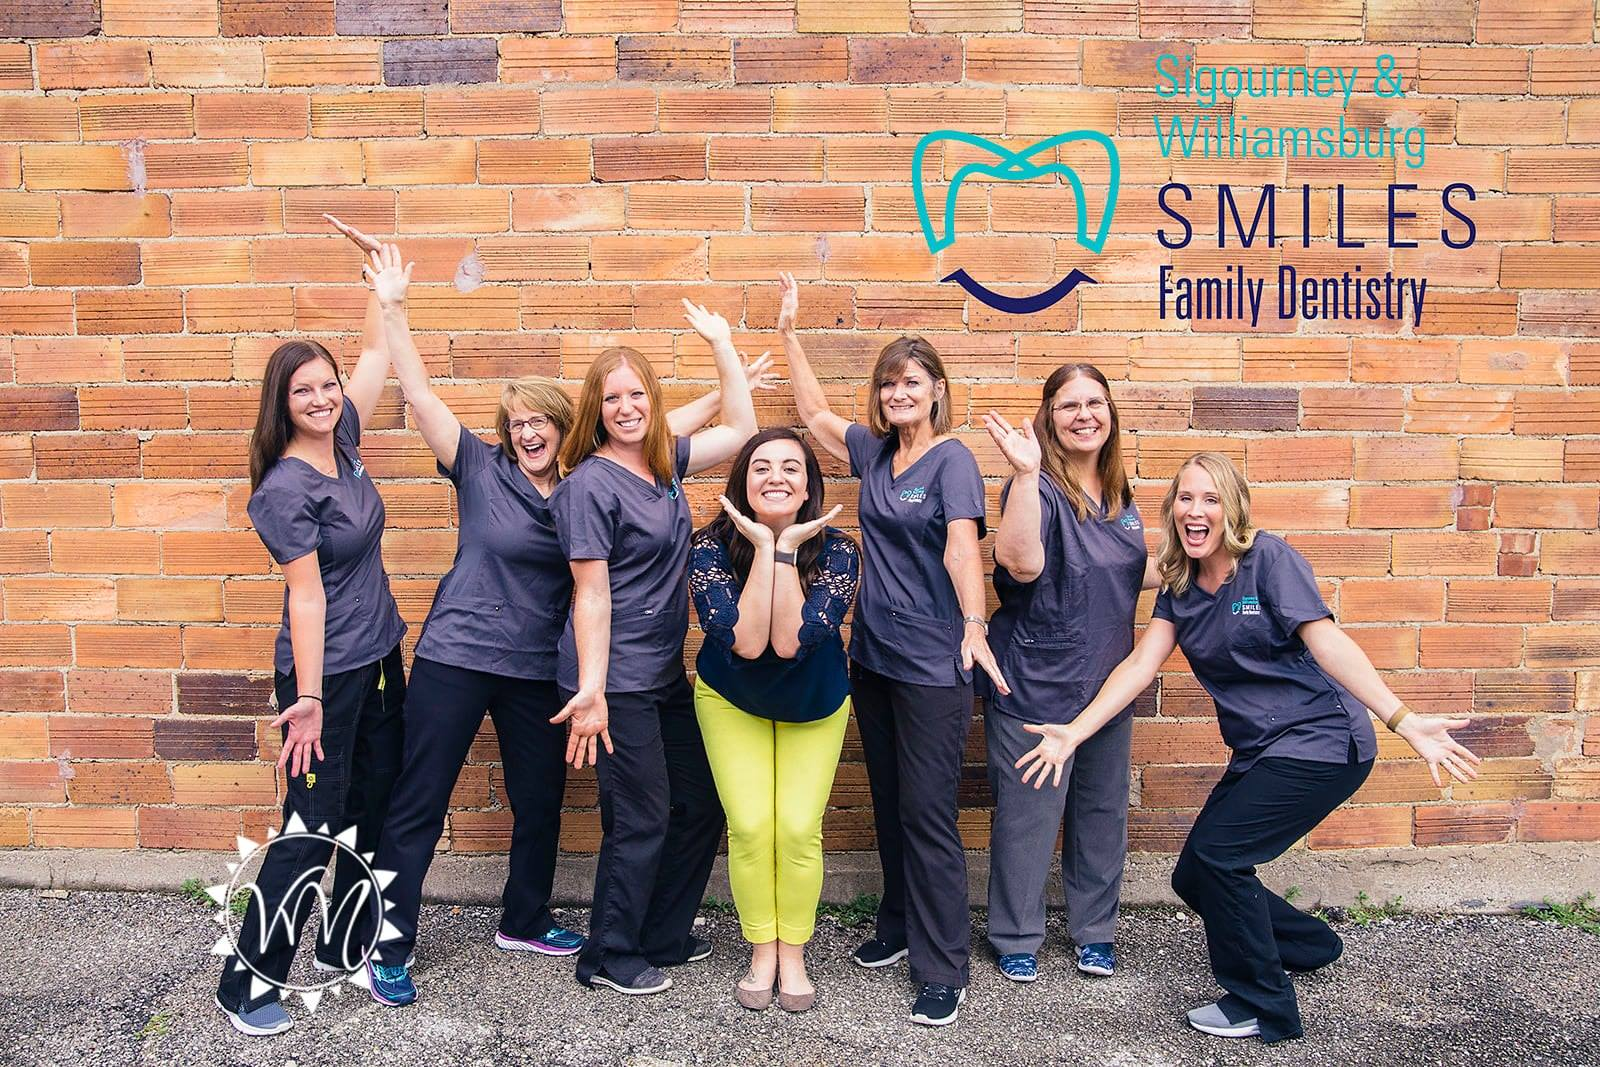 Smiles Family Dentistry Staff